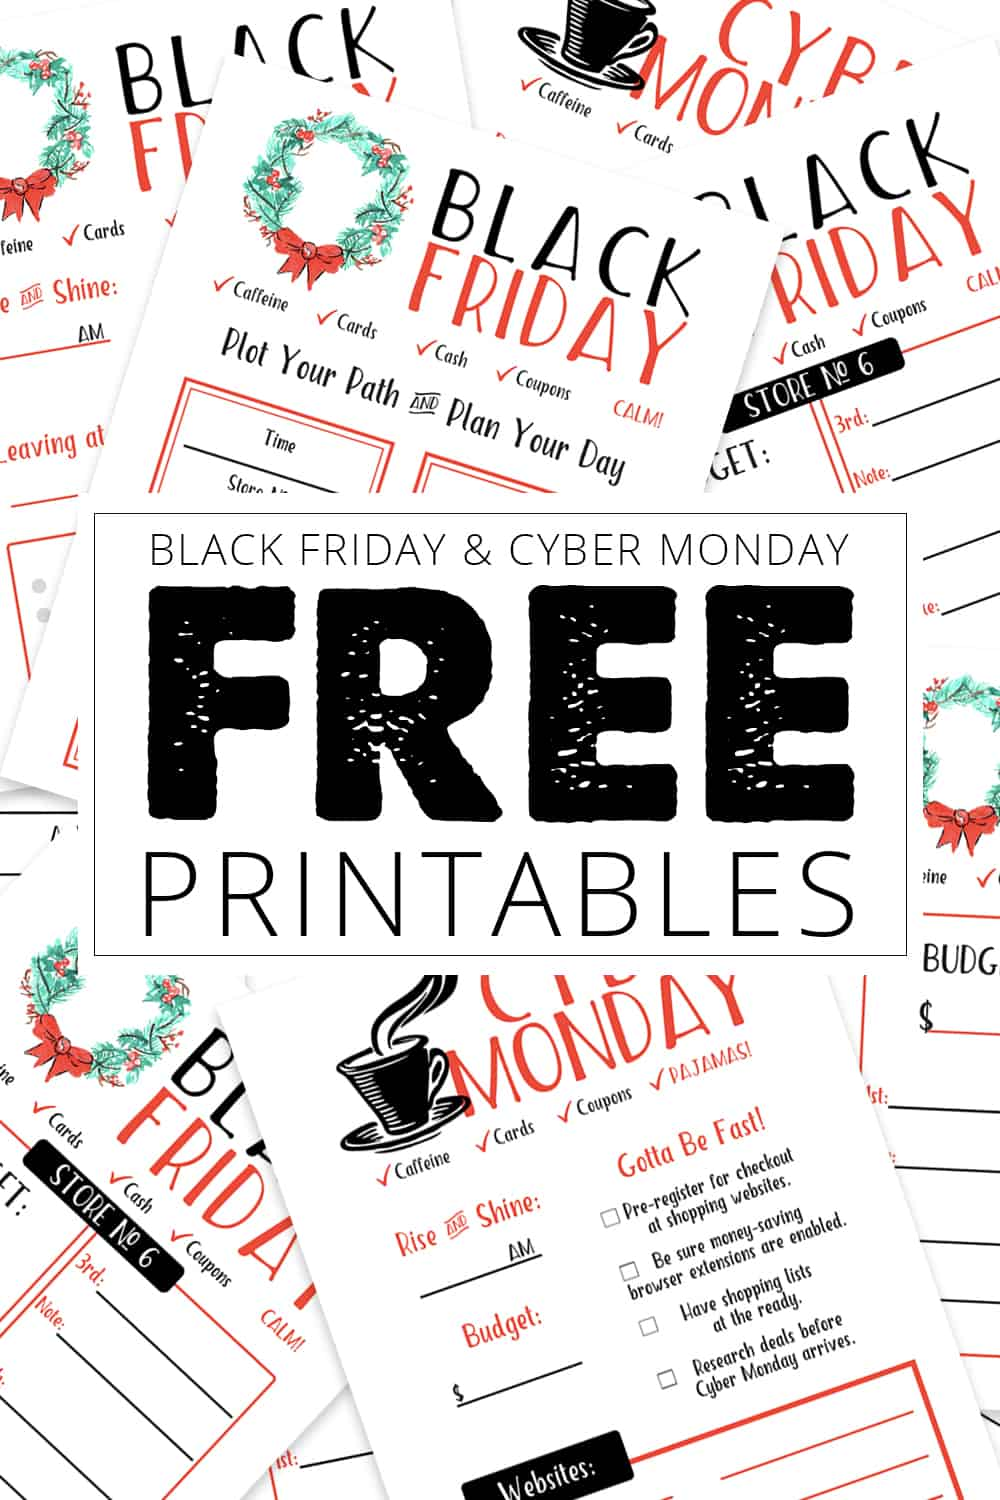 Black Friday and Cyber Monday Free Printables